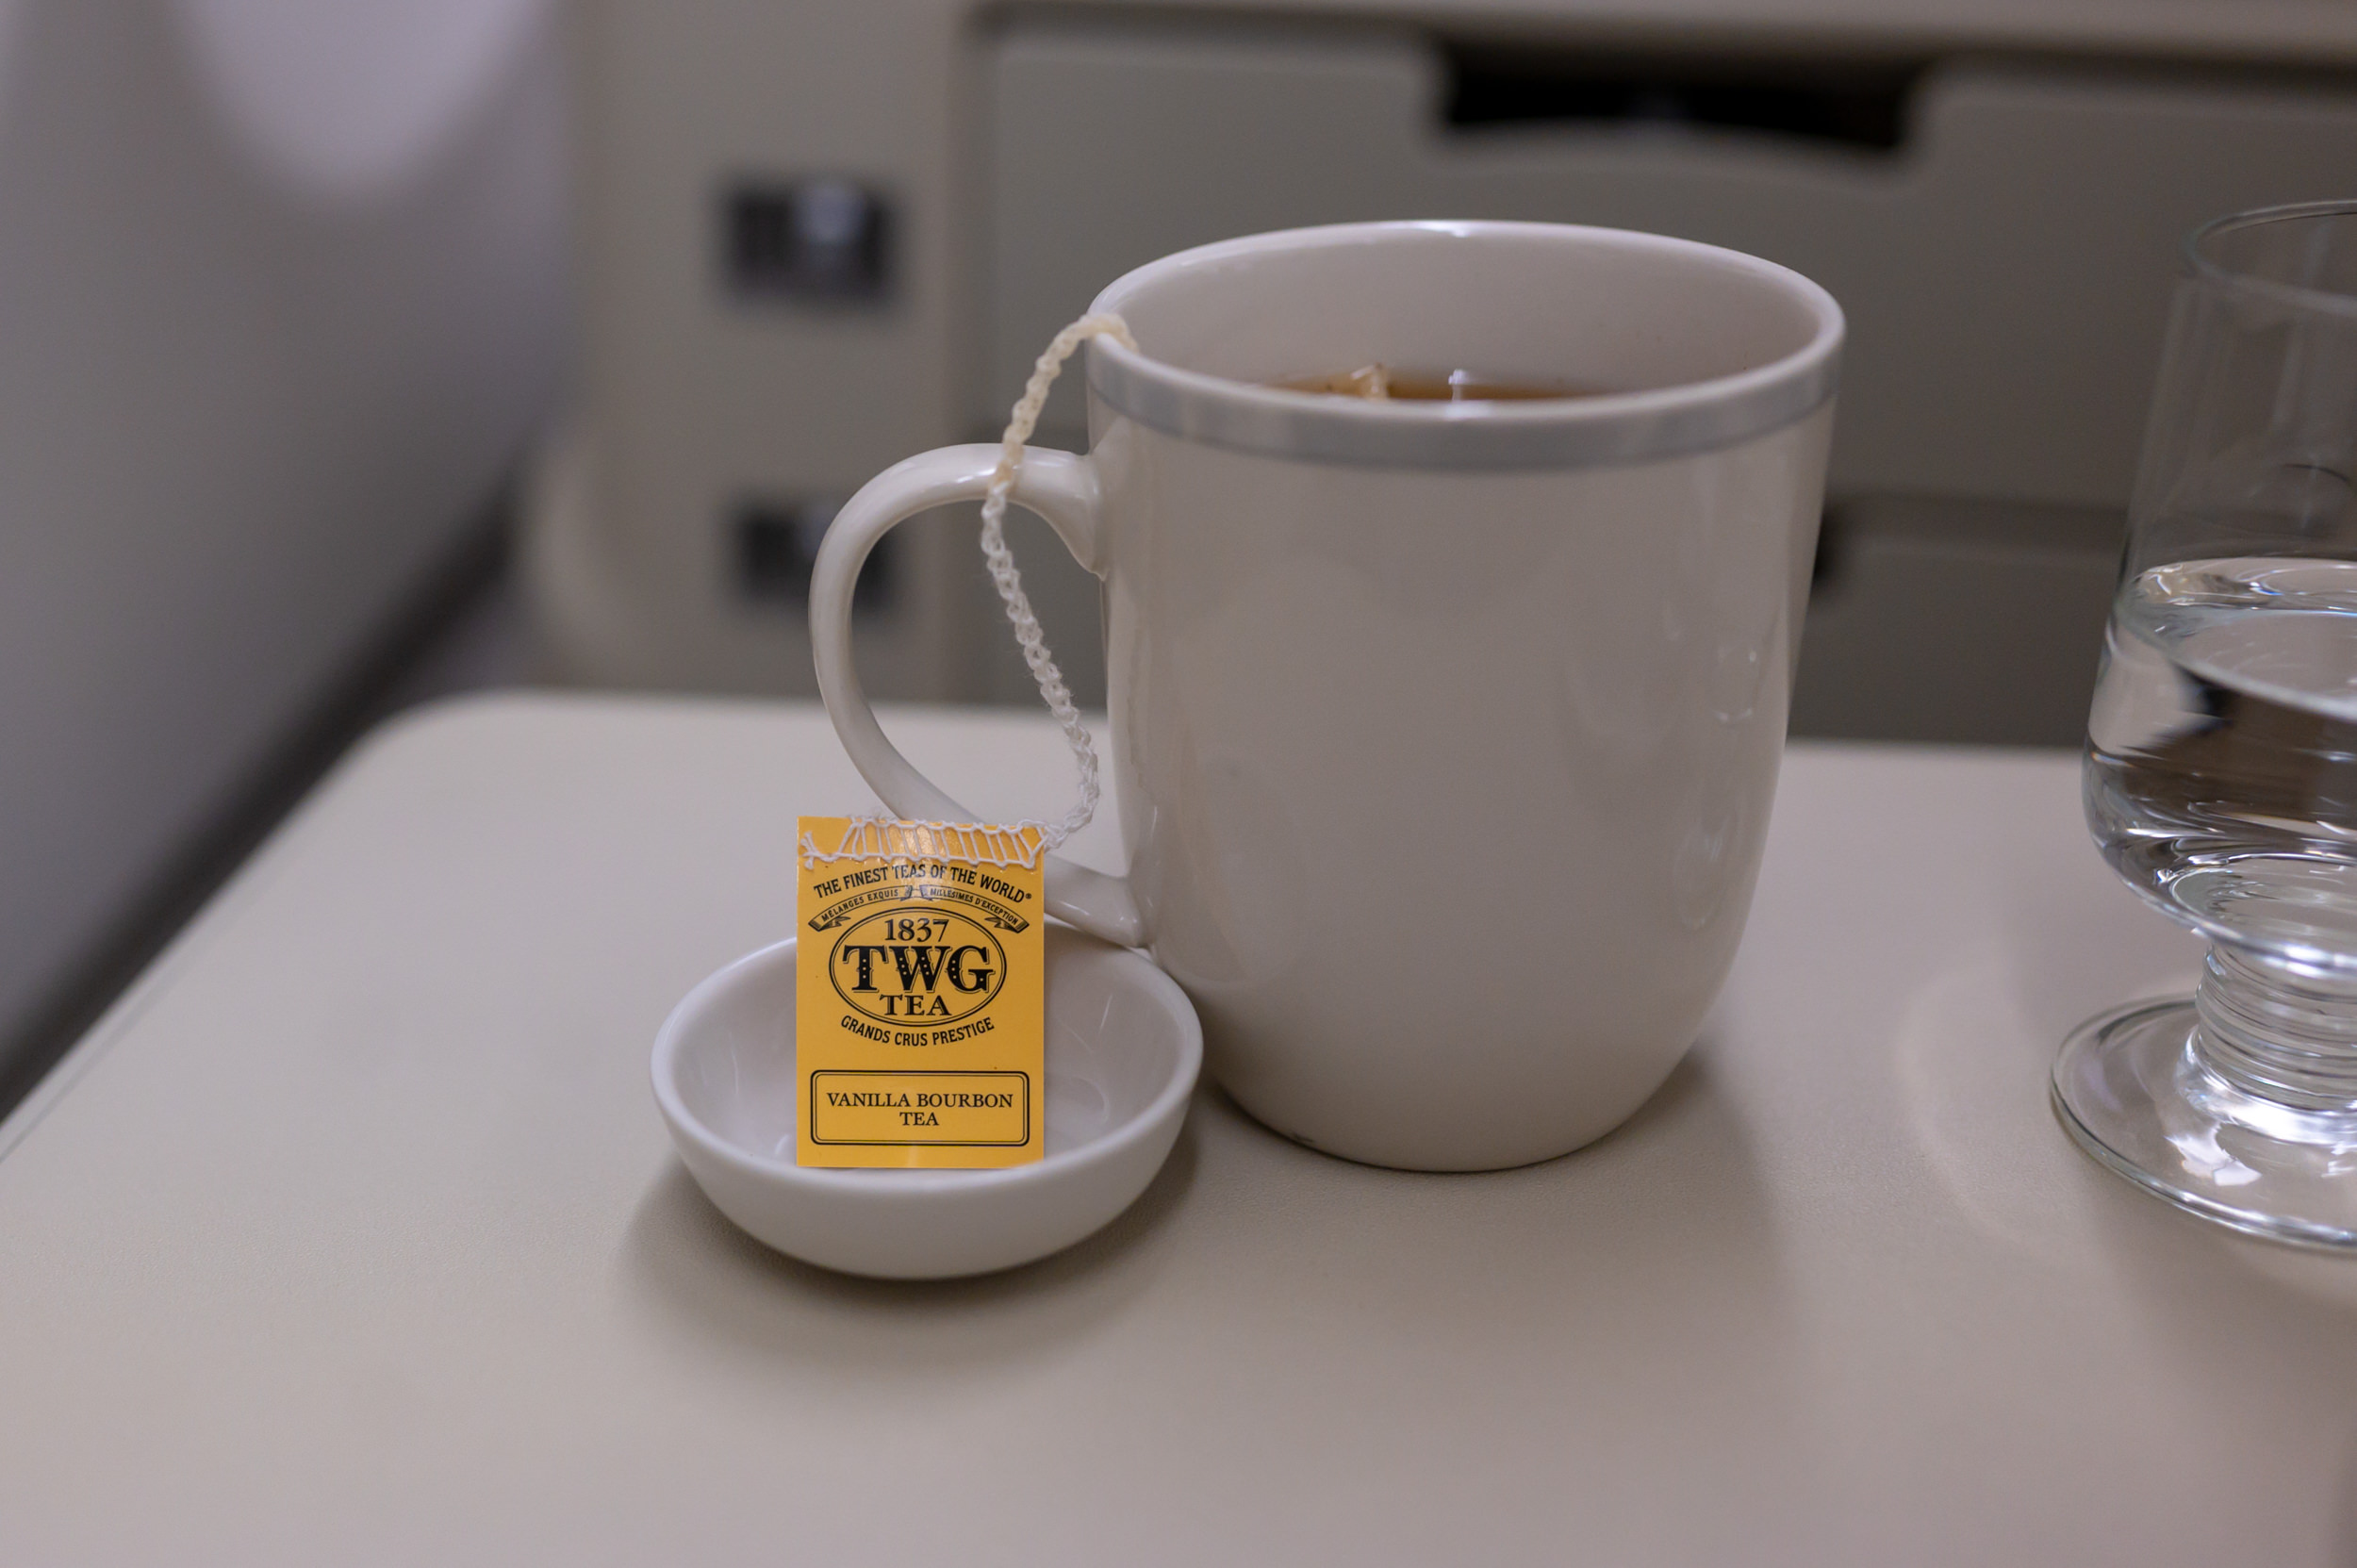 Vanilla Bourbon Tea  Singapore Airlines Business Class A330-300 SQ187 - HAN to SIN